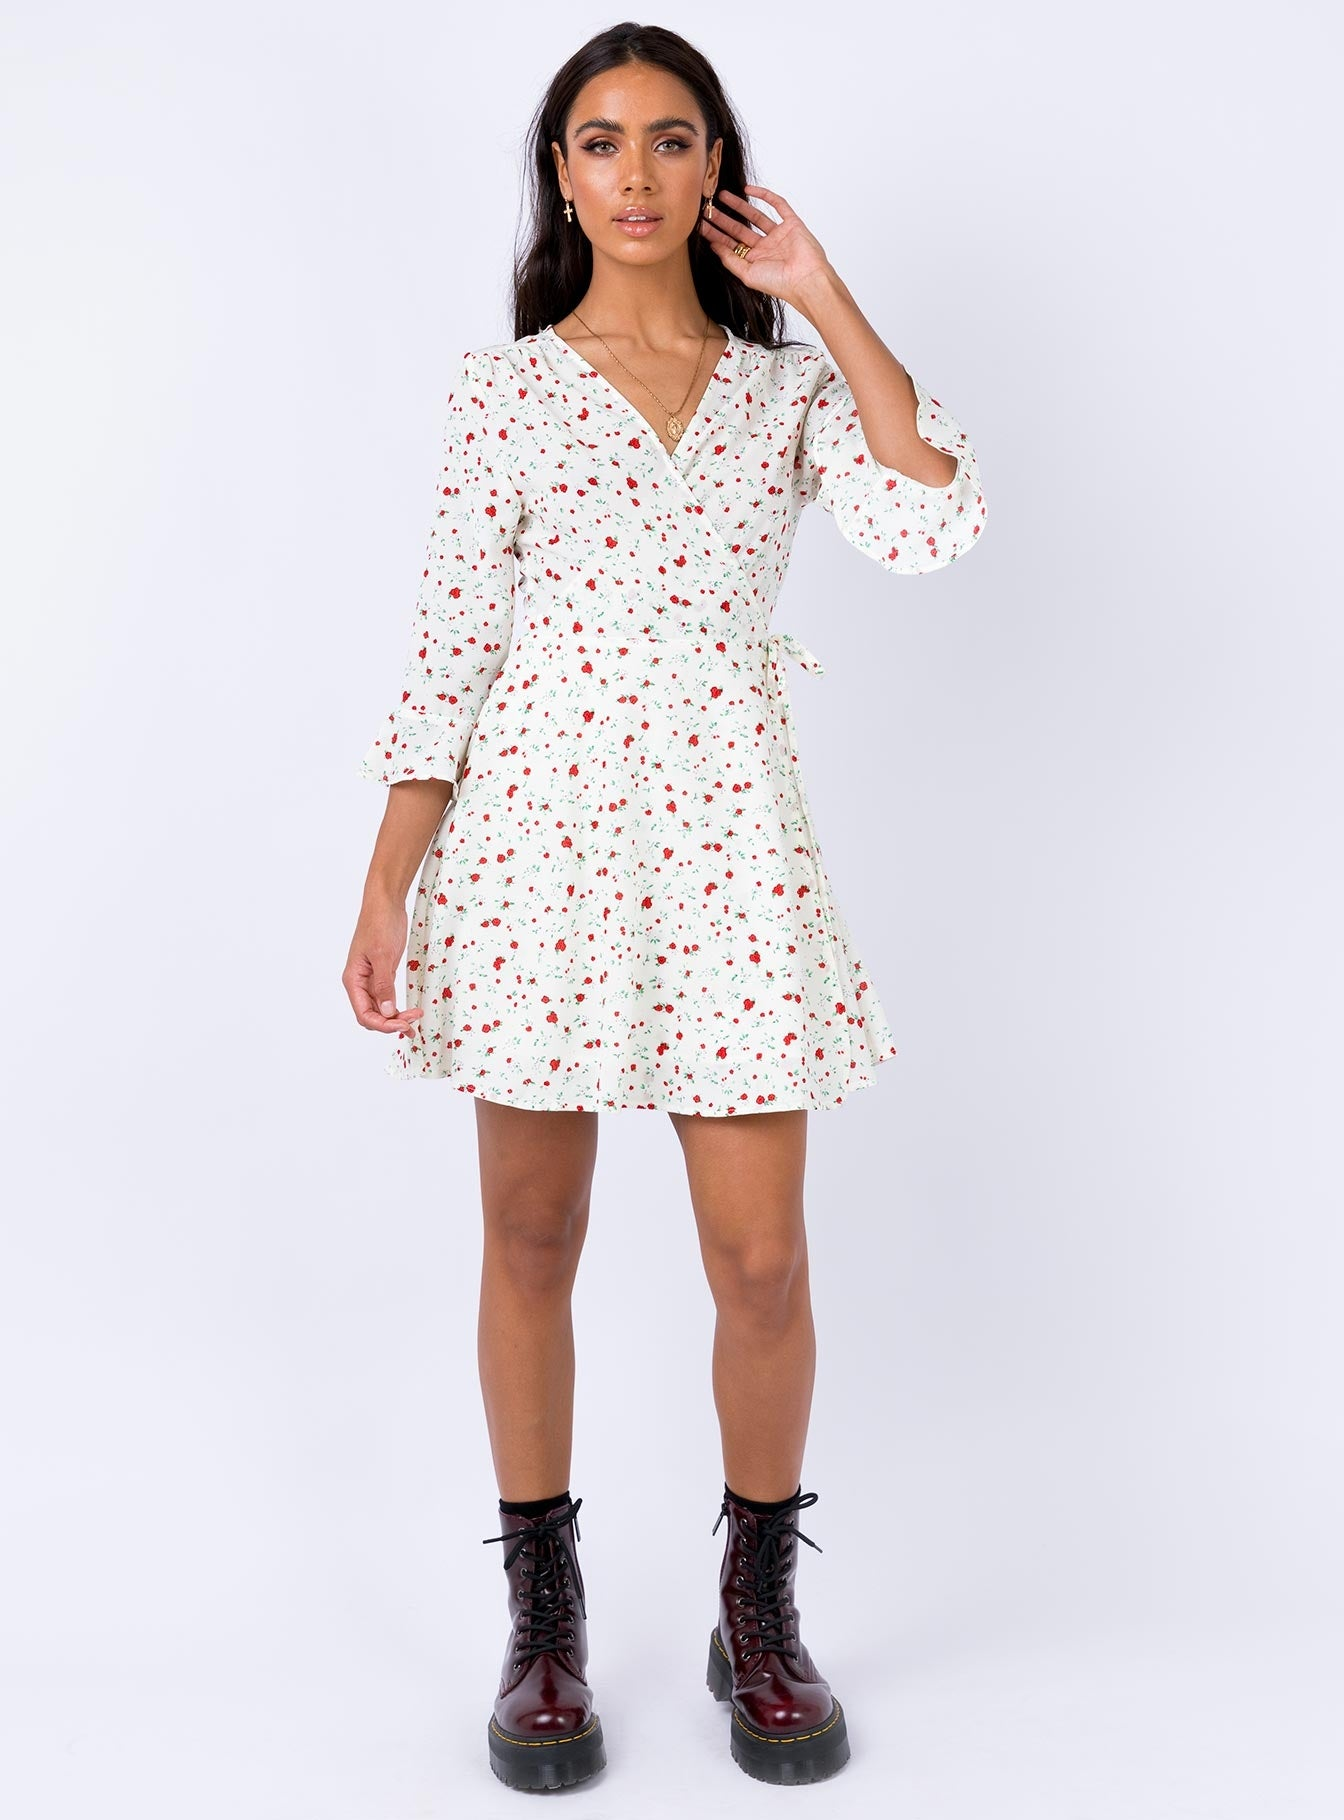 Hebron Mini Dress White